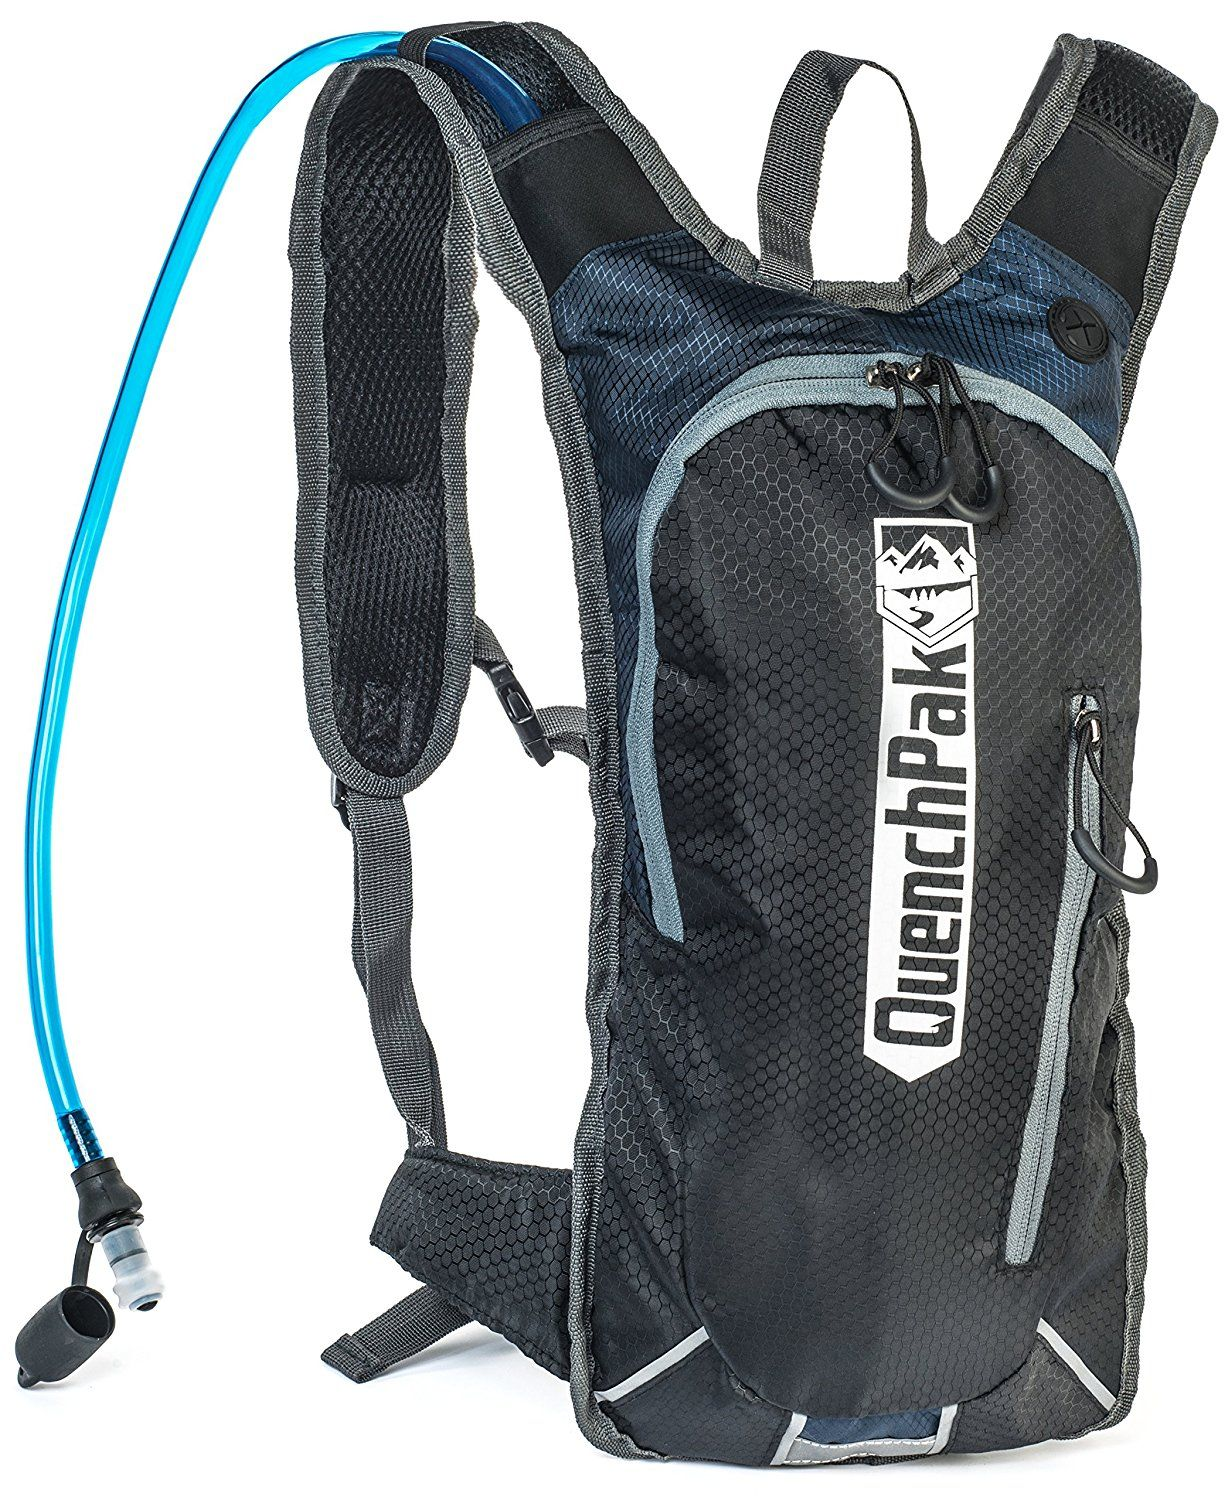 Hydration Pack Comfortable And Lightweight Perfect Fit Best Quality Water Pak For Outdoor Sports Men A Hydration Pack Mountain Bike Backpack Biking Backpack